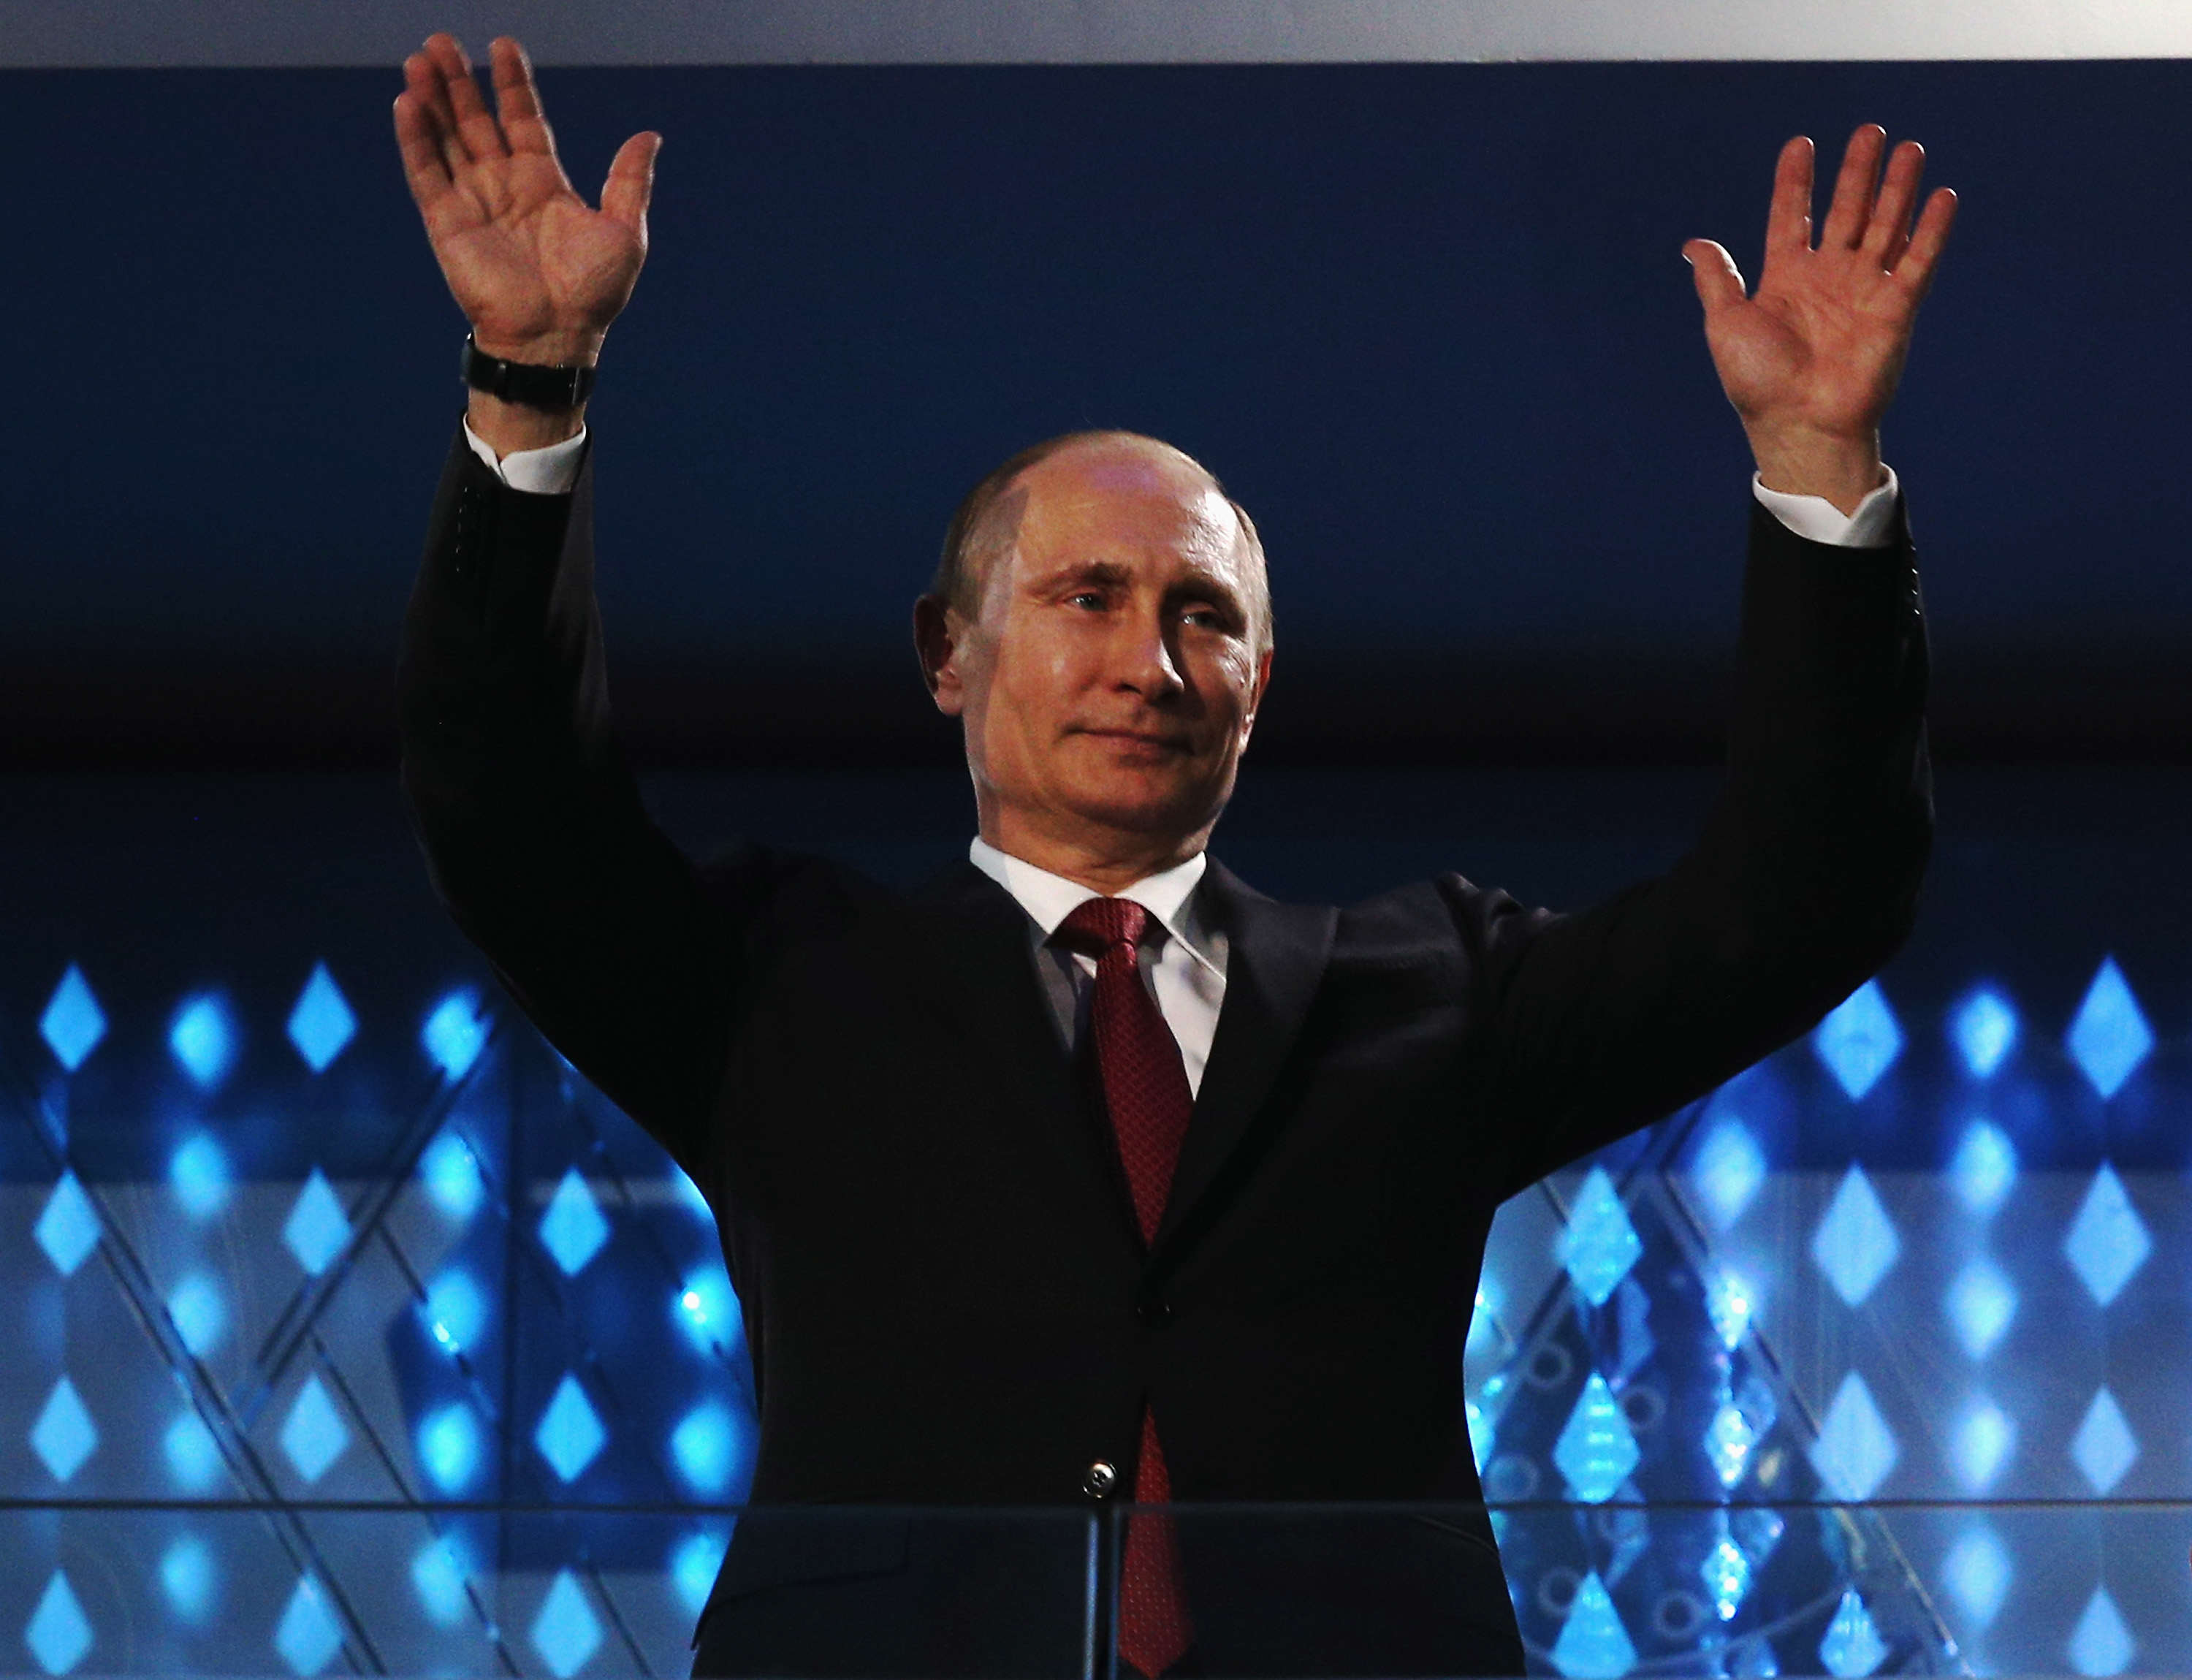 GettyImages 479111301 Putin Given Go Ahead To Build Super Army To Destroy ISIS